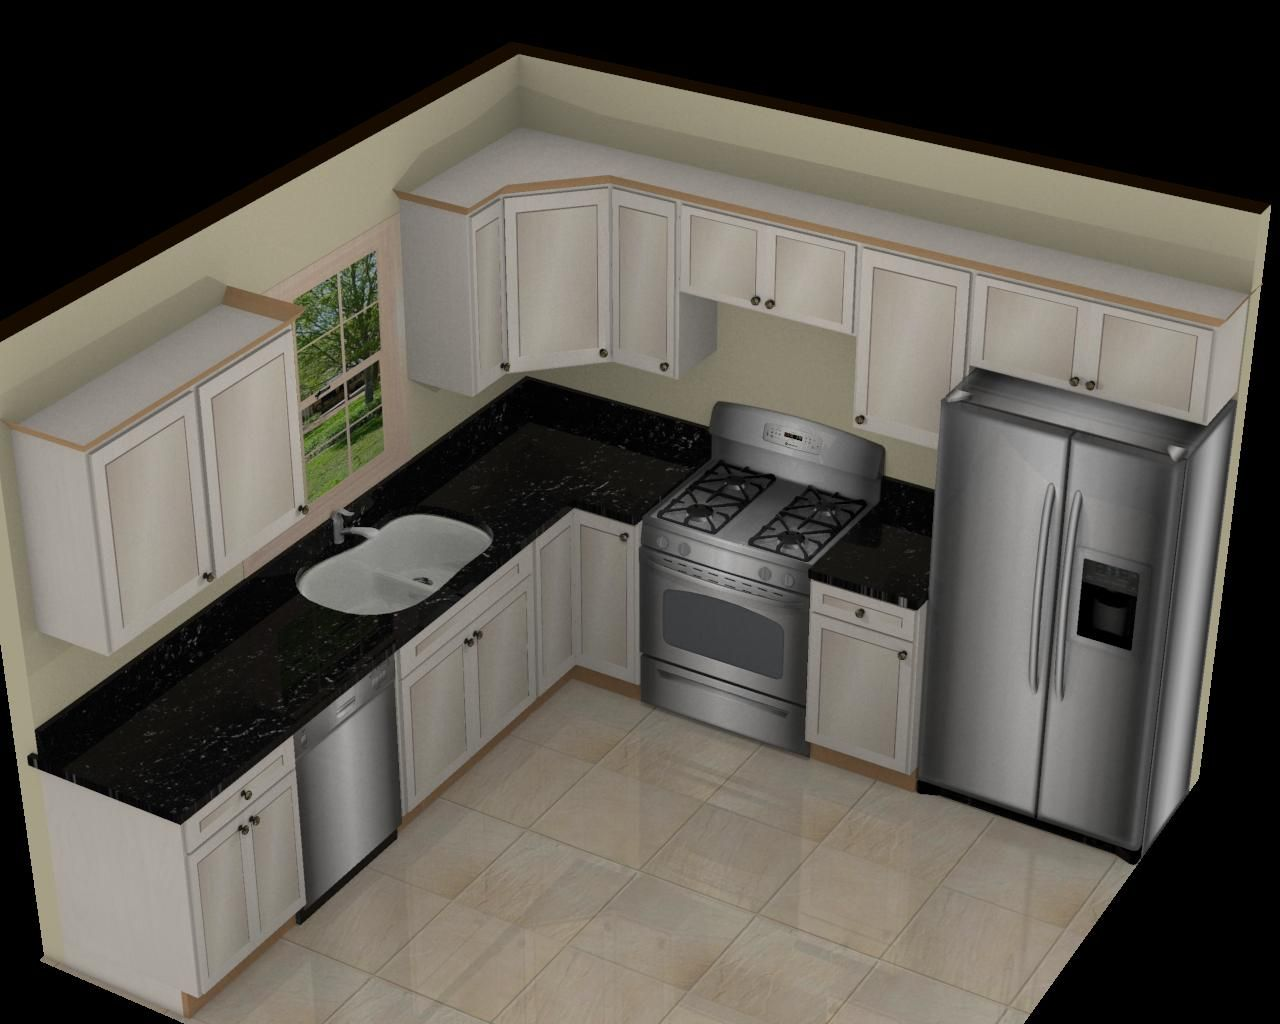 10x10 kitchen cabinets - Find This Pin And More On Kitchen